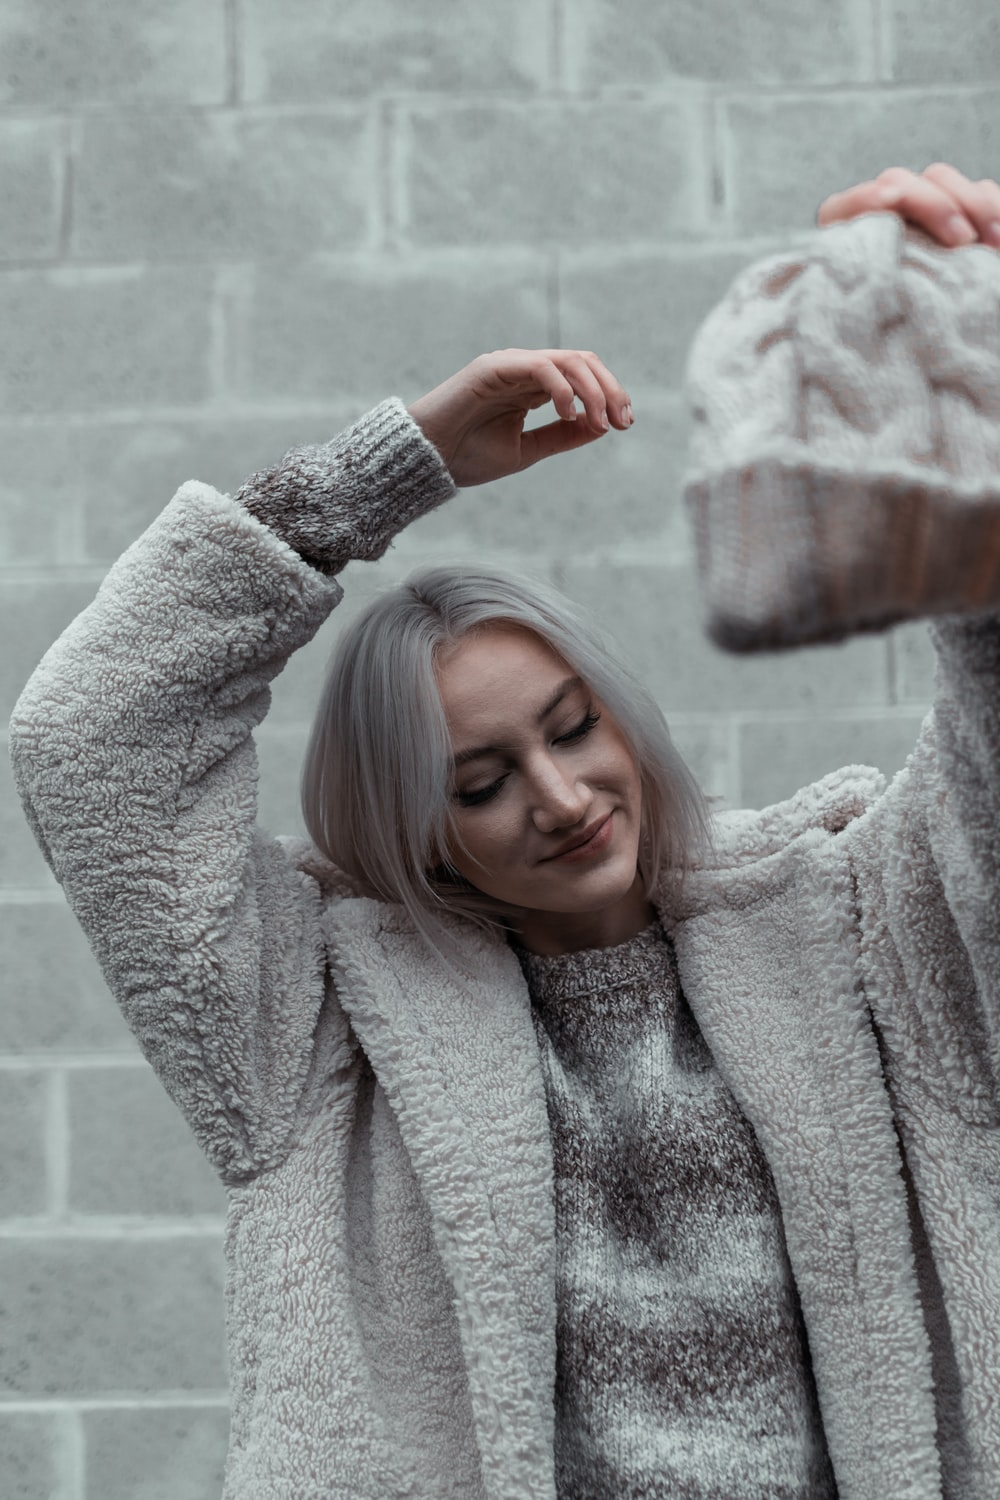 woman in gray sweater holding her hair